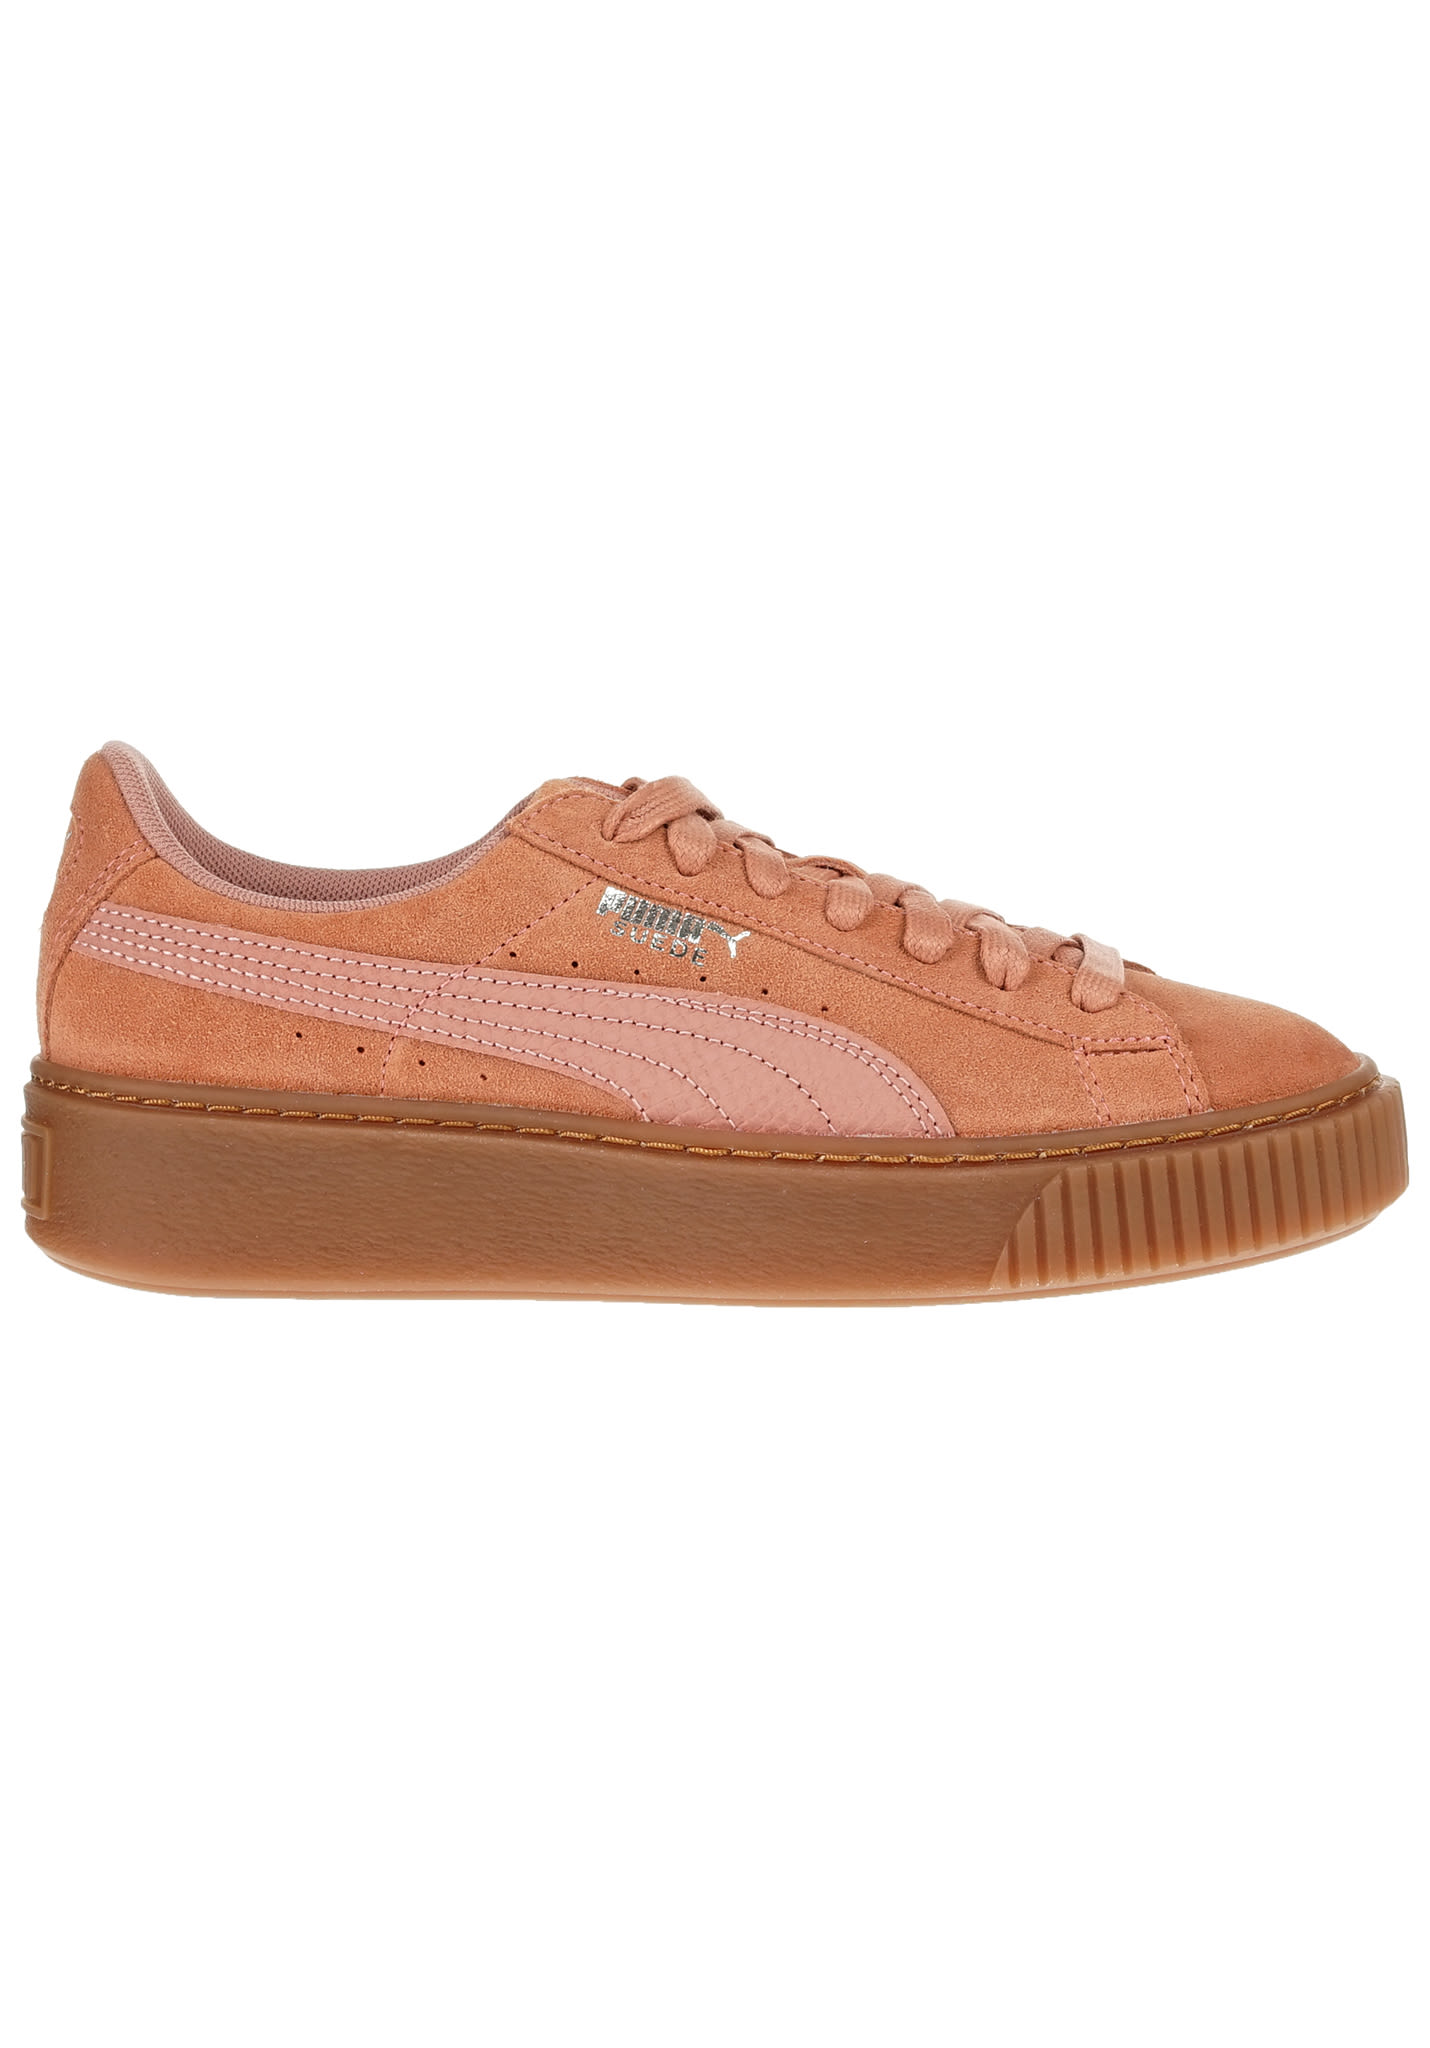 d3626919dcd289 Puma Suede Platform Animal - Sneakers for Women - Pink - Planet Sports